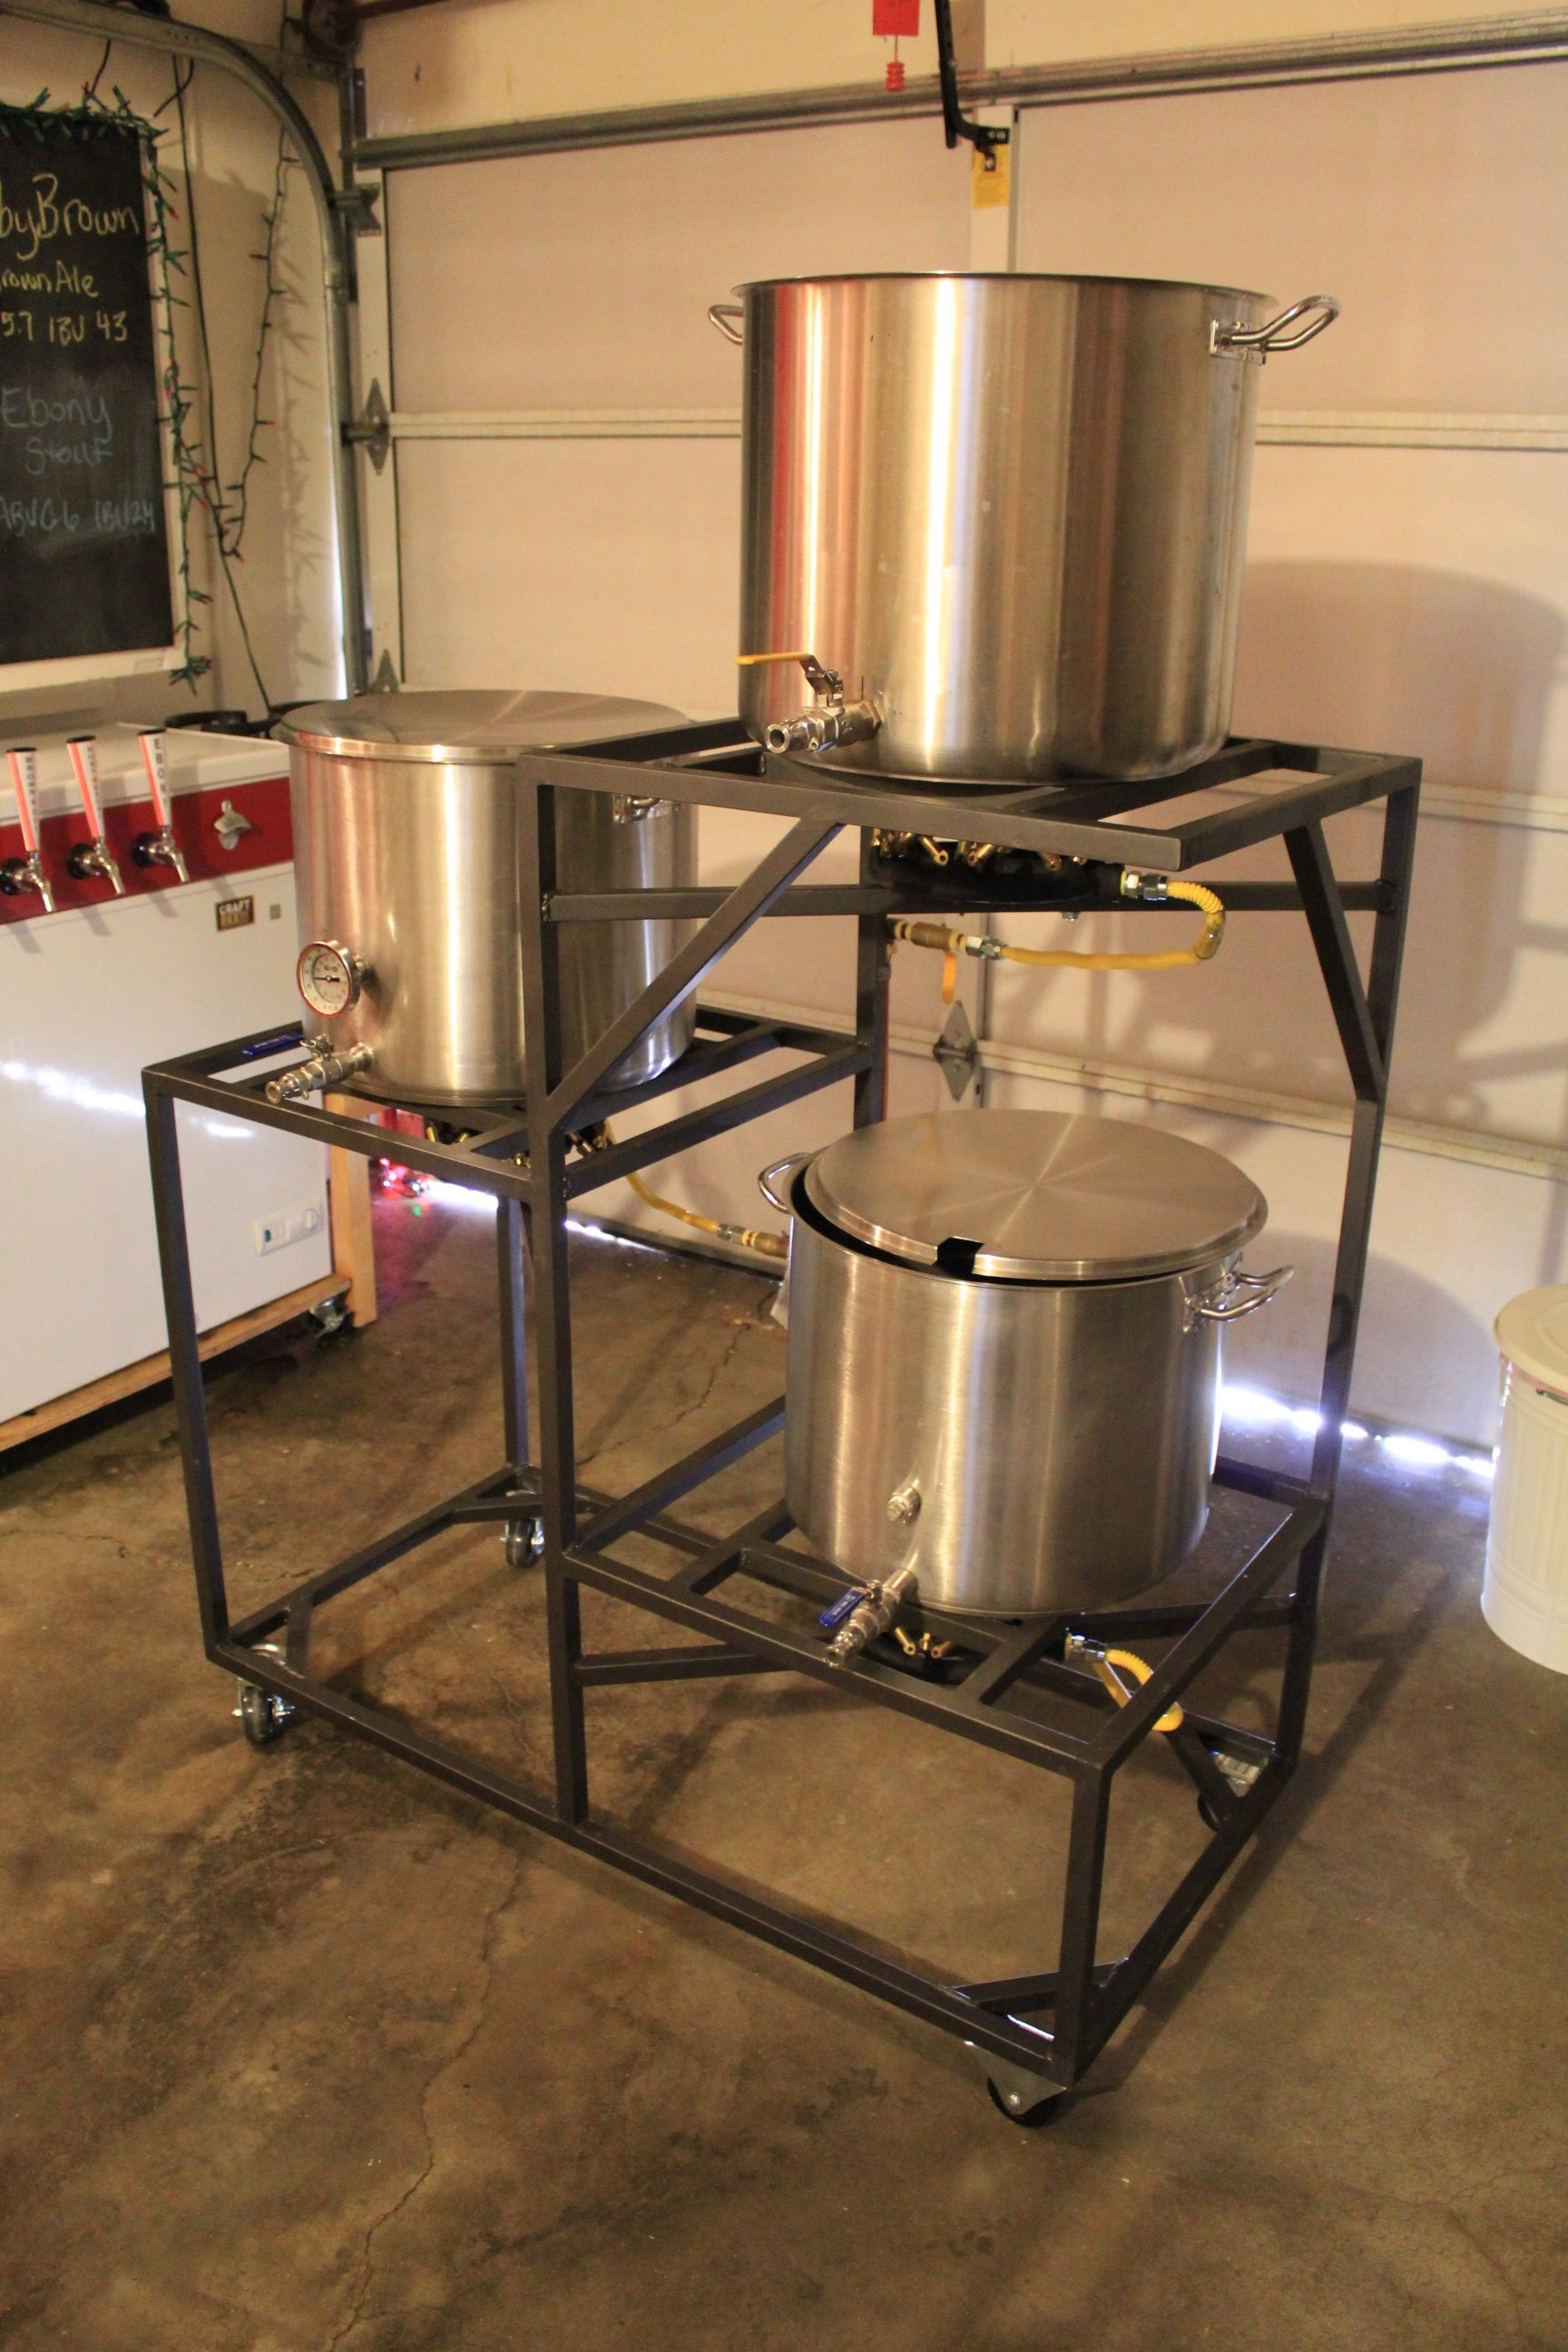 Show Us Your Sculpture Or Brew Rig Page 183 Home Brew Forums Home Brewing Beer Home Brewery Home Brewing Equipment